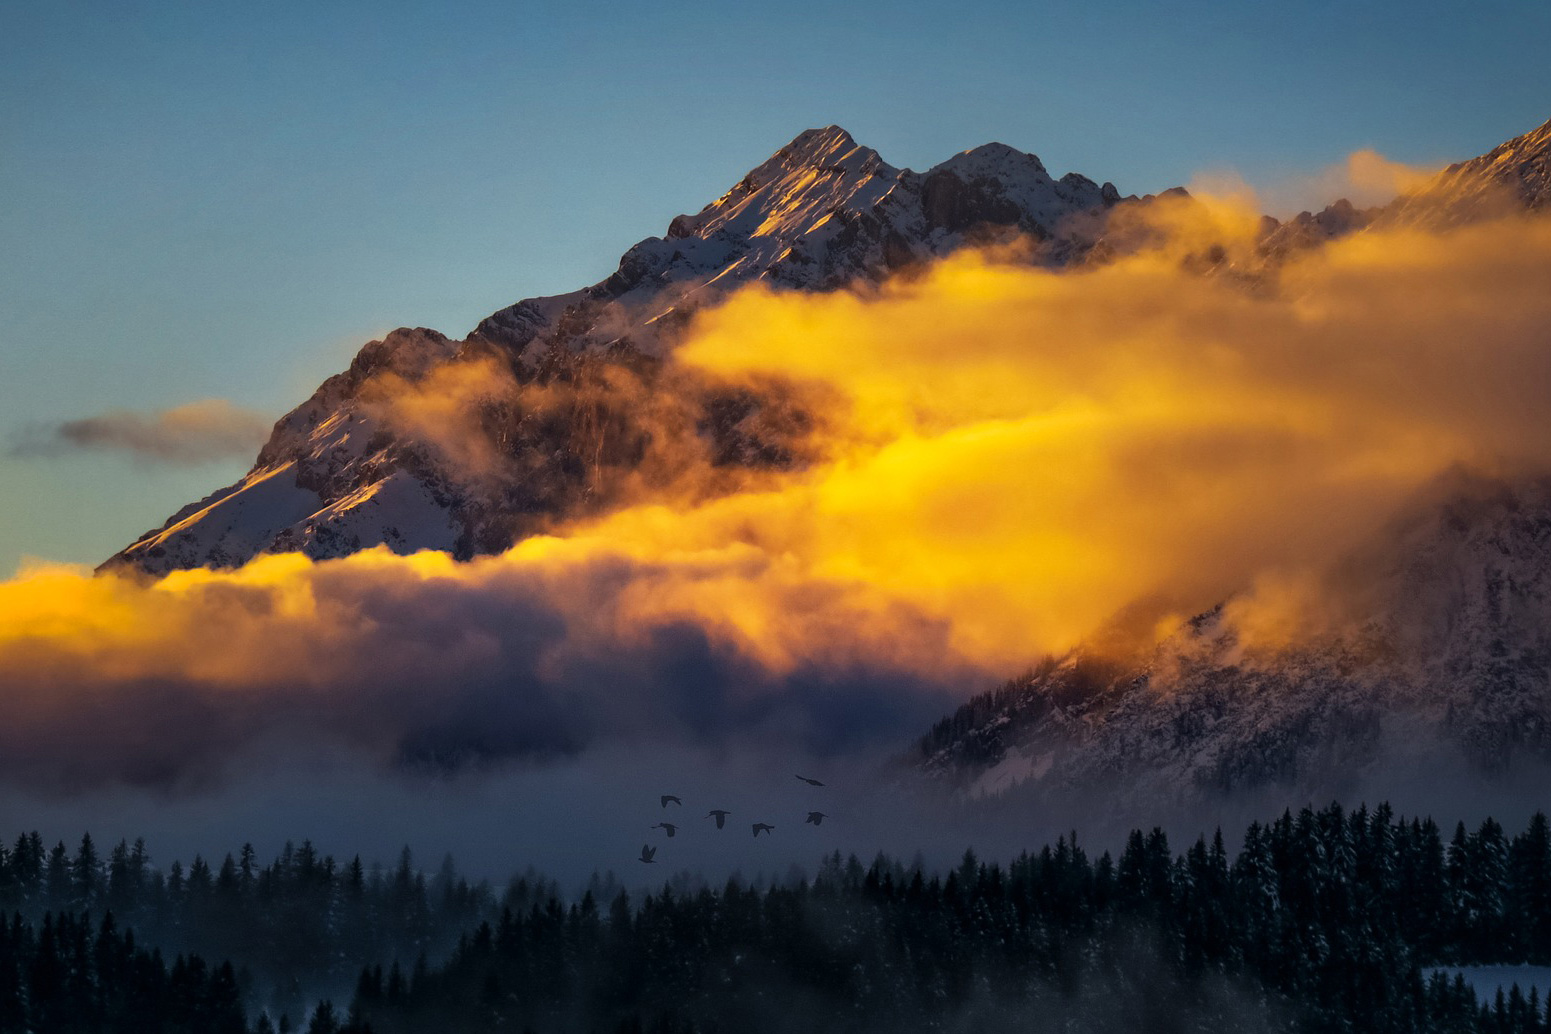 alps_mountain-2286511_1920